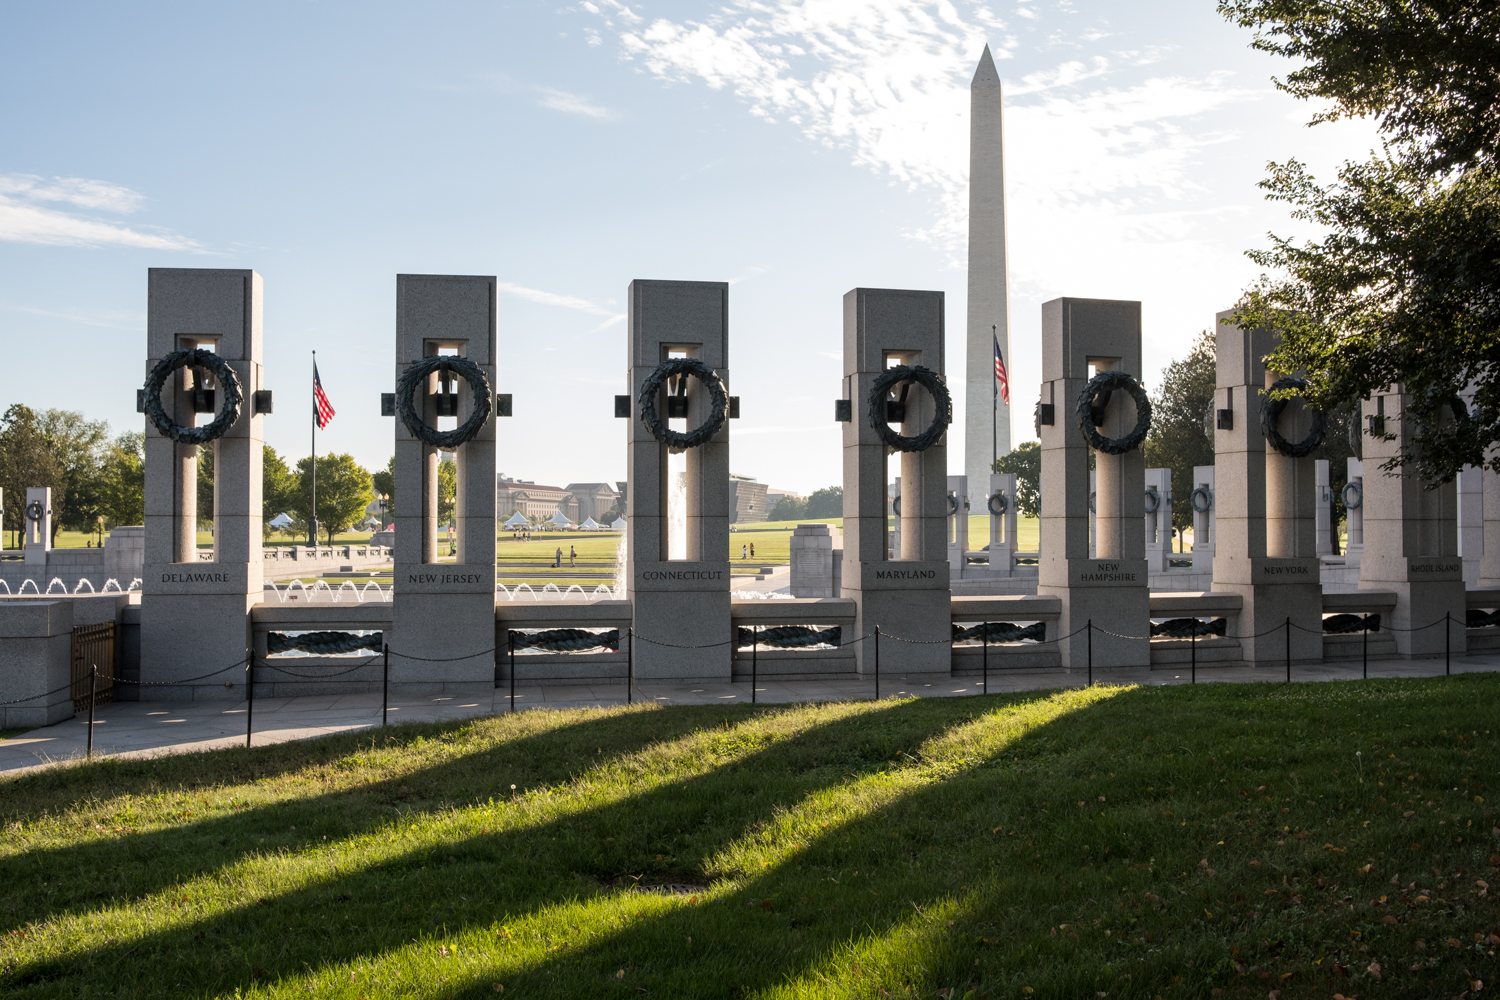 The World War II Memorial in Washington, D.C. casts long shadows in the morning light.